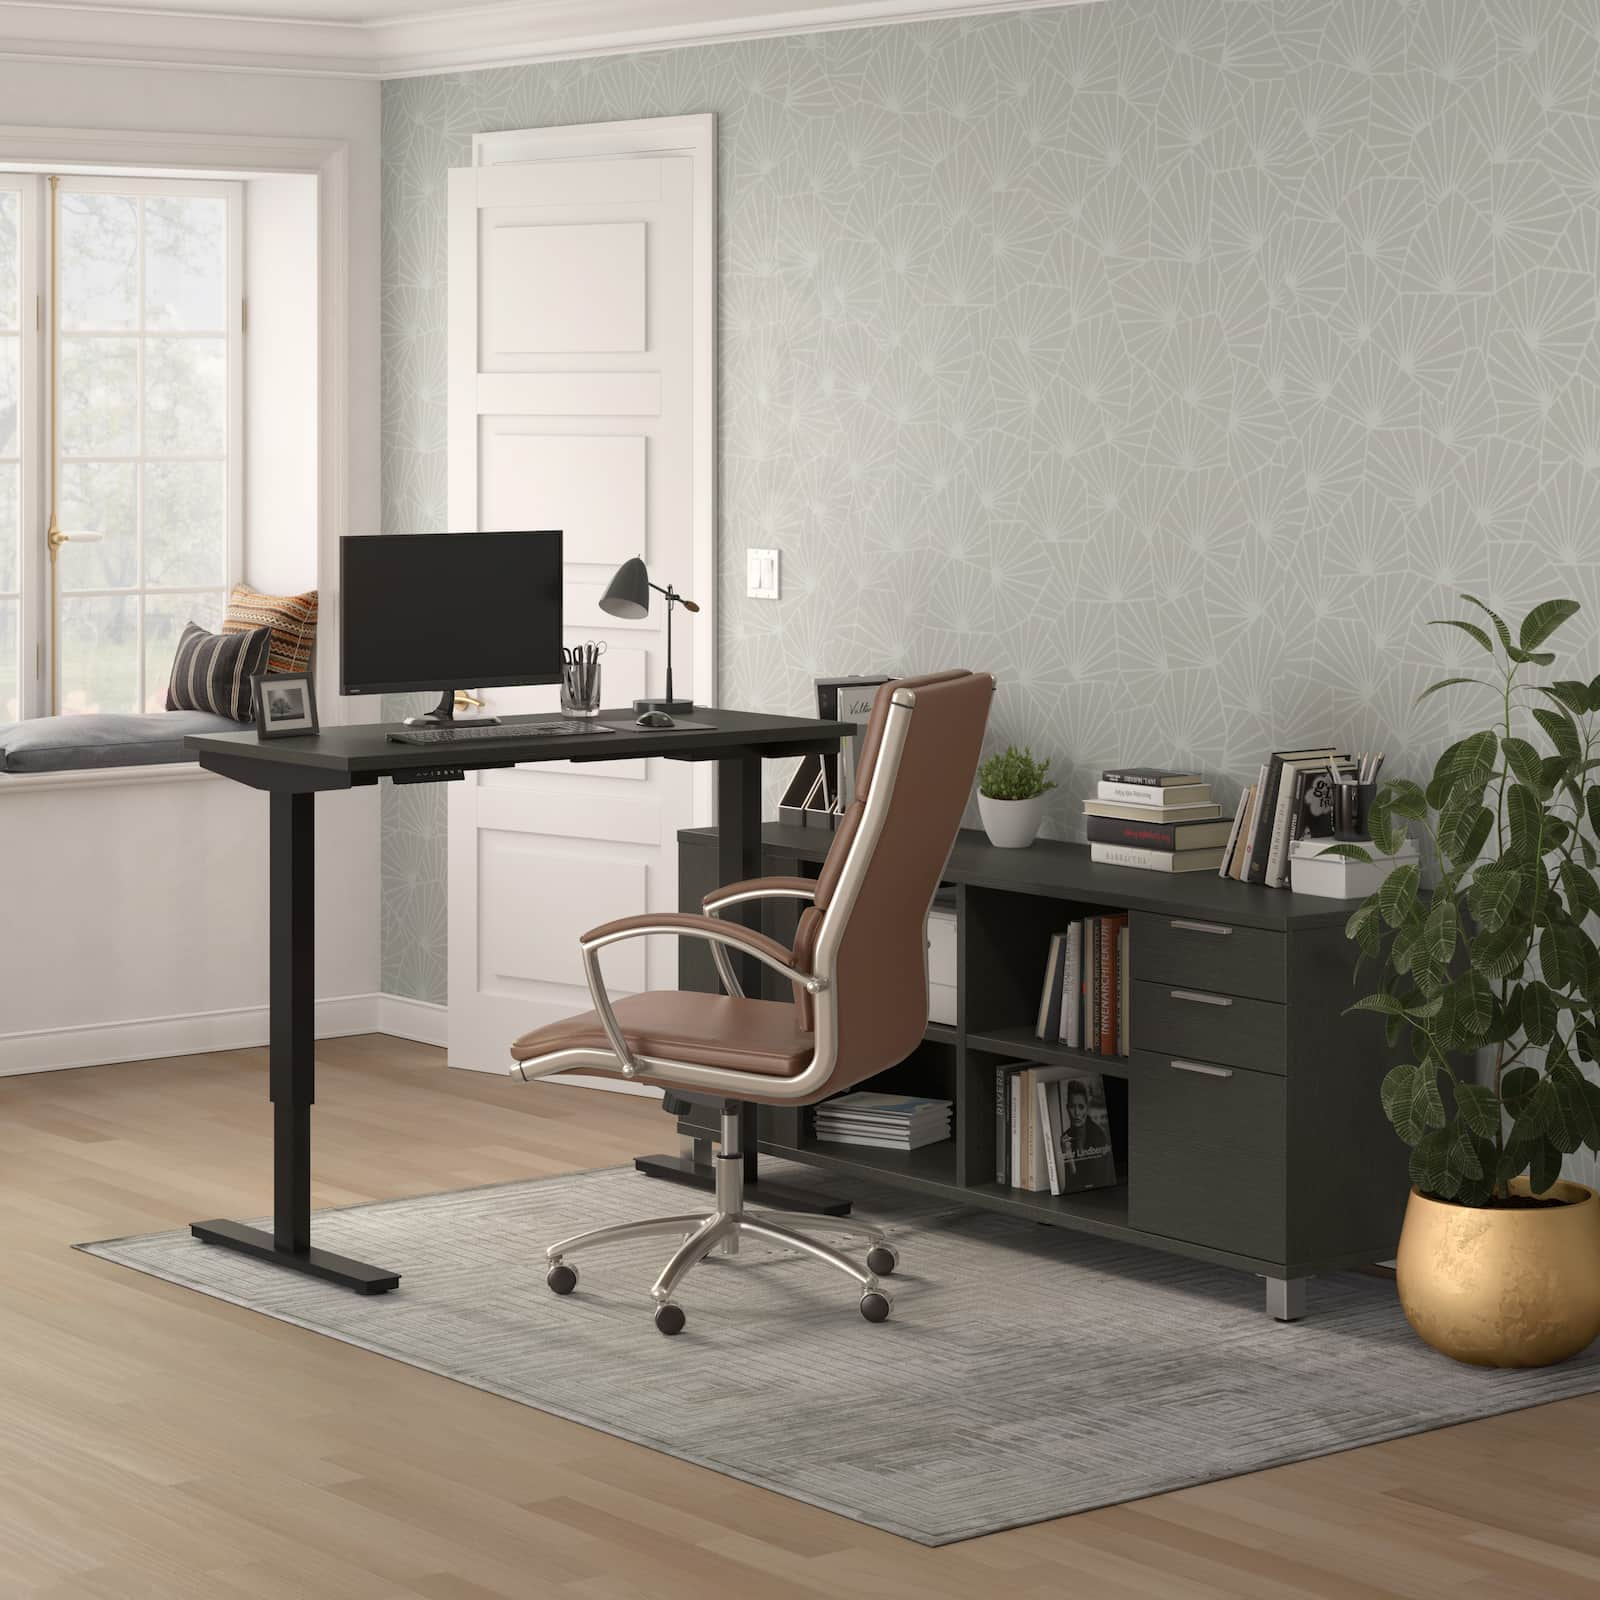 standing desk with credenza